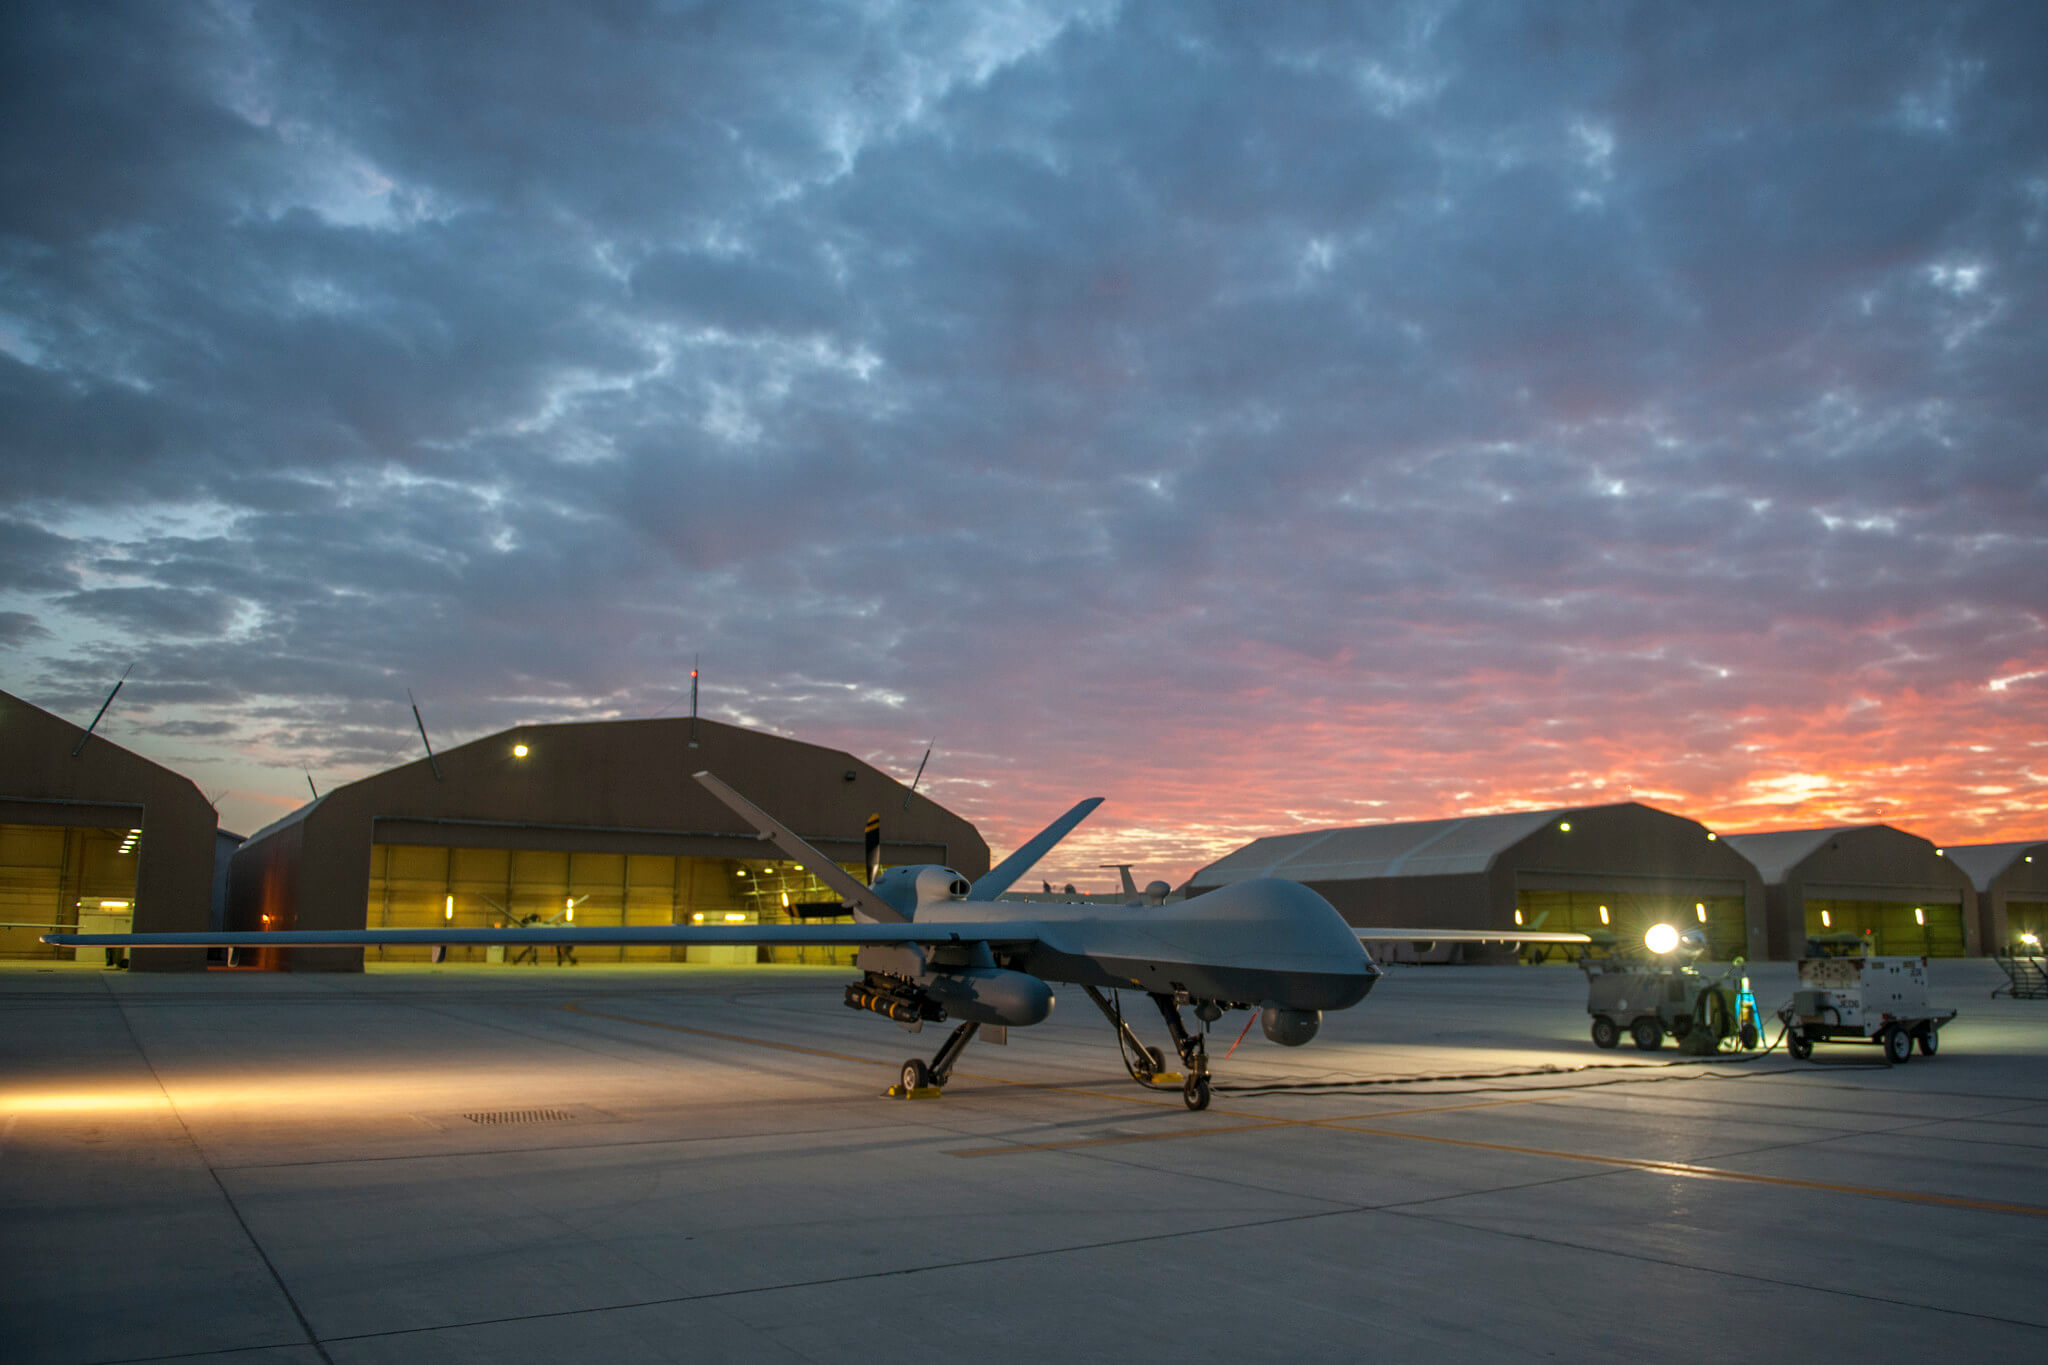 Zwijnenburg-foto-Een Amerikaanse MQ-9 Reaper in 2015 op de luchtmachtbasis van Kandahar in Afghanistan - US Department of Defense